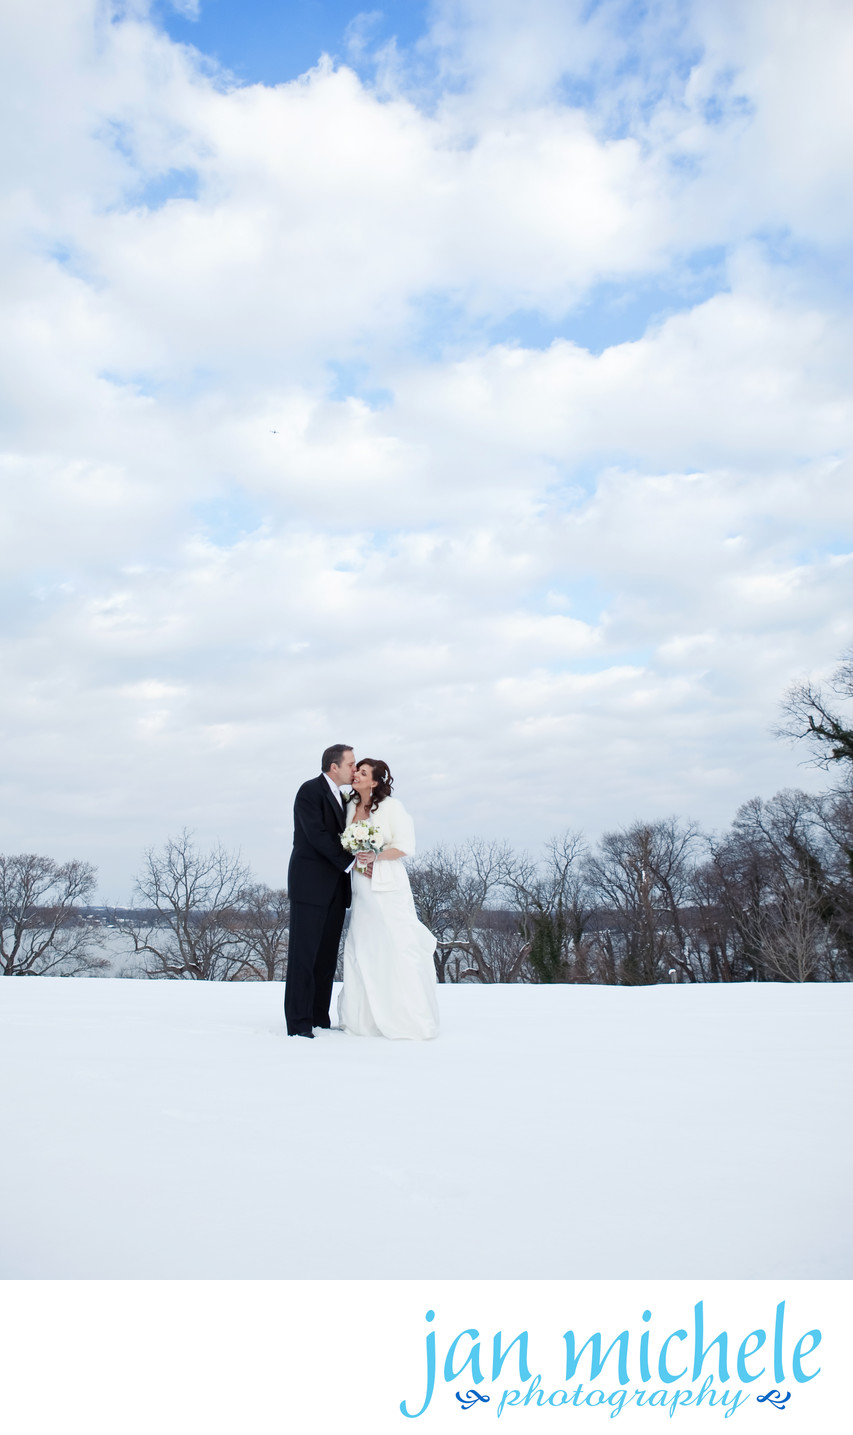 Blue sky and Snow on a wedding day!